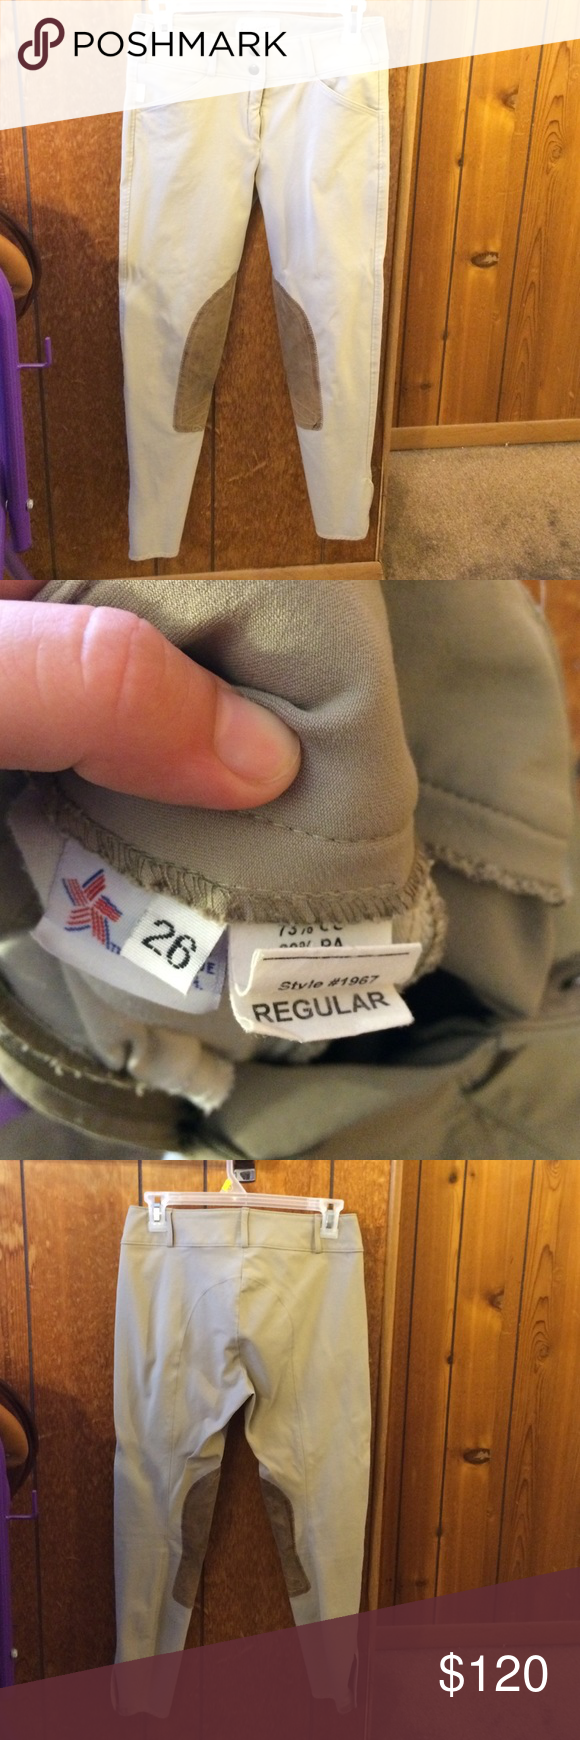 Tailored Sportsman Trophy Hunters tan 26 breeches Tailored sportsman size 27 tan breeches. Very good condition. Stitching slightly coming loose in top left corner of label. A few small dark marks on knee patch. Very good condition, well taken care of. Tailored sportsman Pants